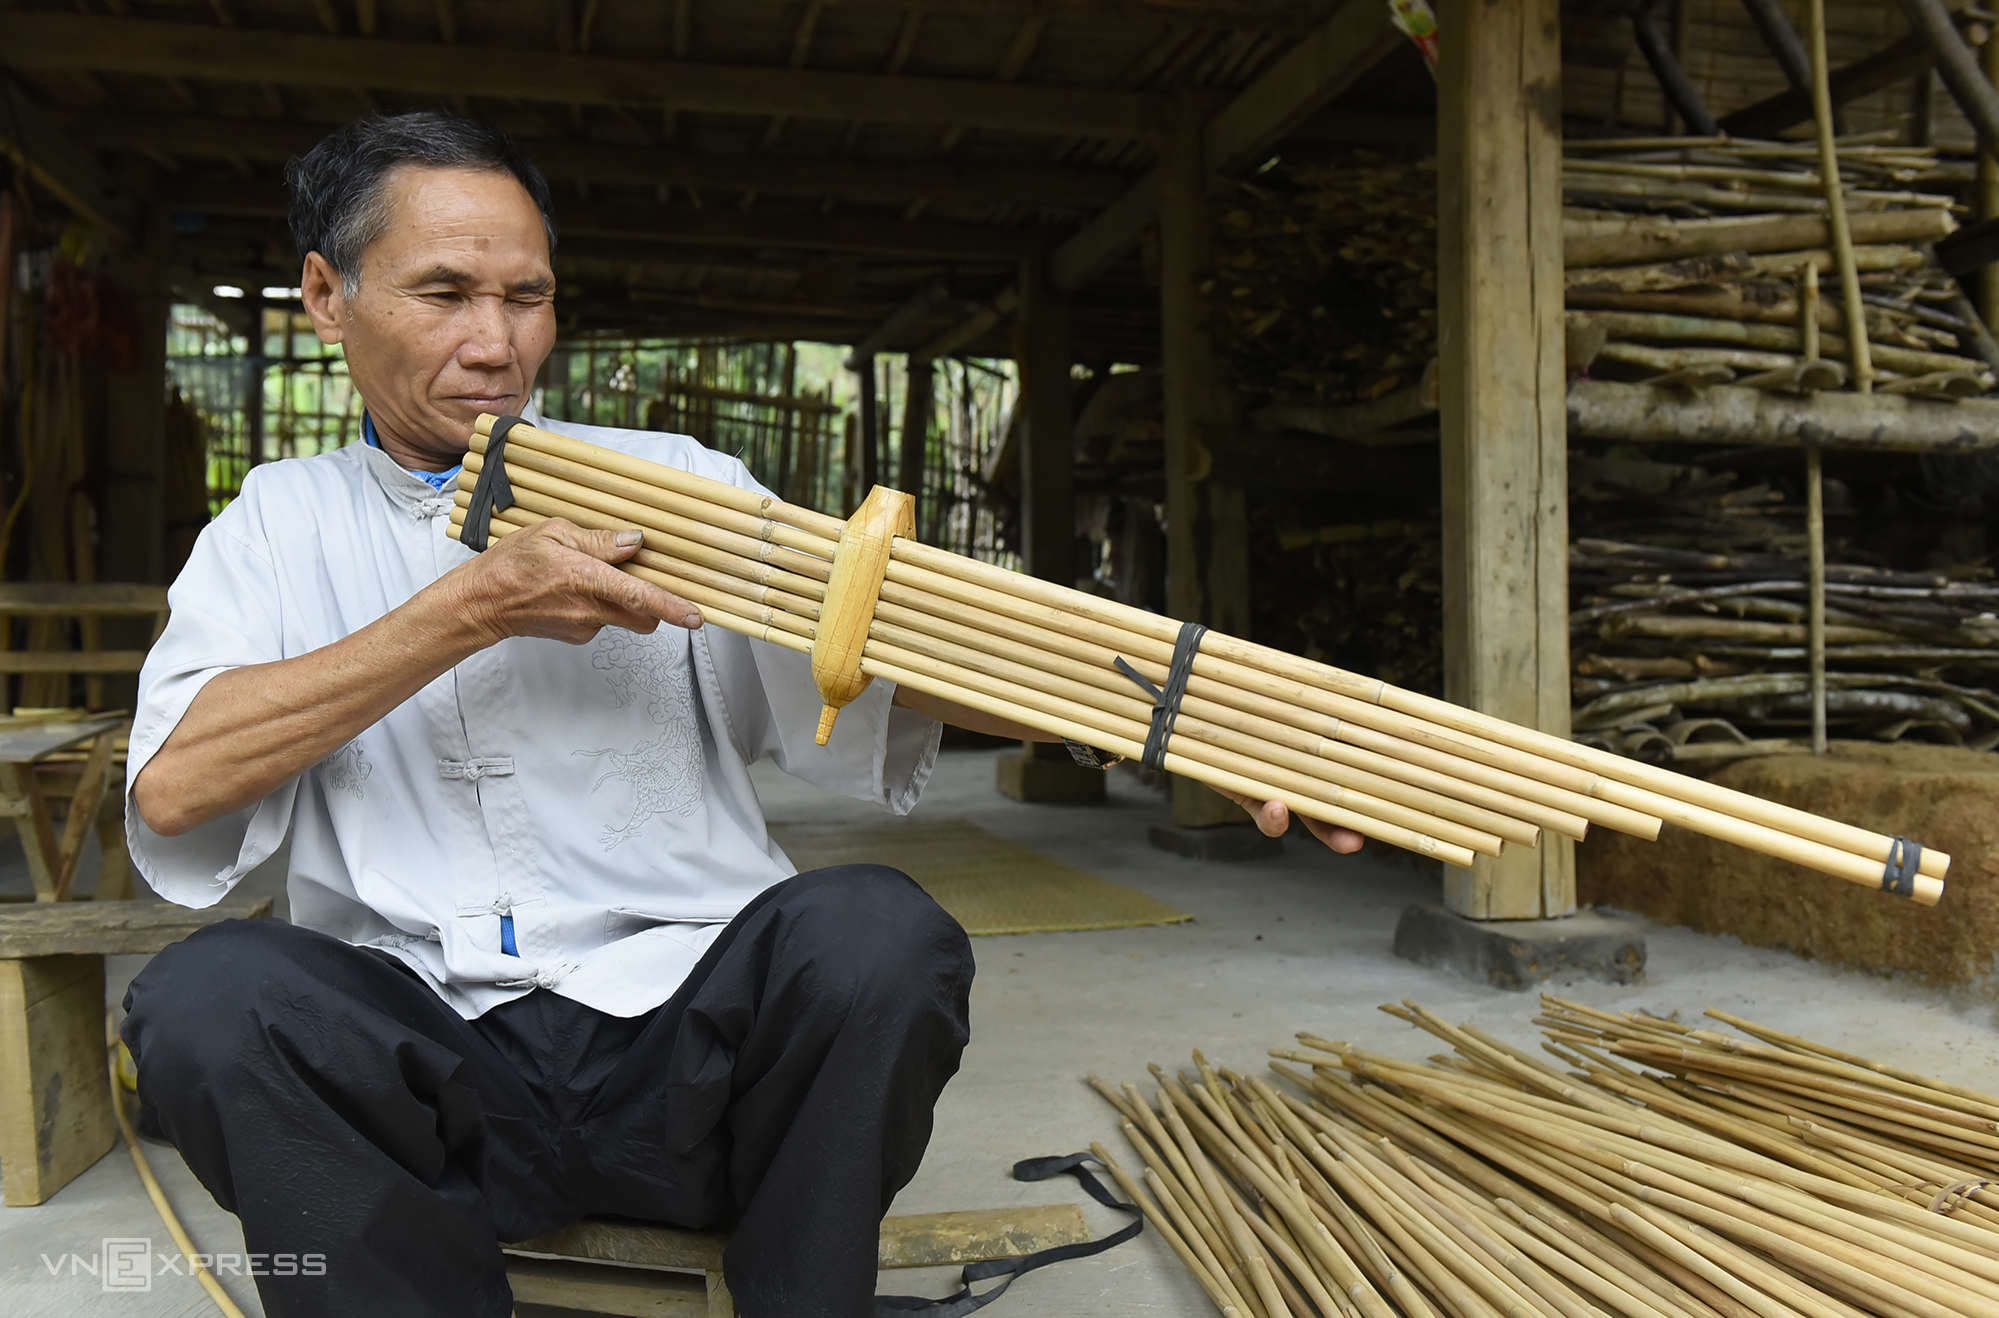 Besides making the instrument for personal use, he gives away or sells most of his khaens to those who share the same hobby. The most expensive one was sold for VND12 million ($518.2).  Playing the khaen is a hobby that's good for your health, helps increase life expectancy and preserves a part of our ancestral traditions, Tinh maintained.